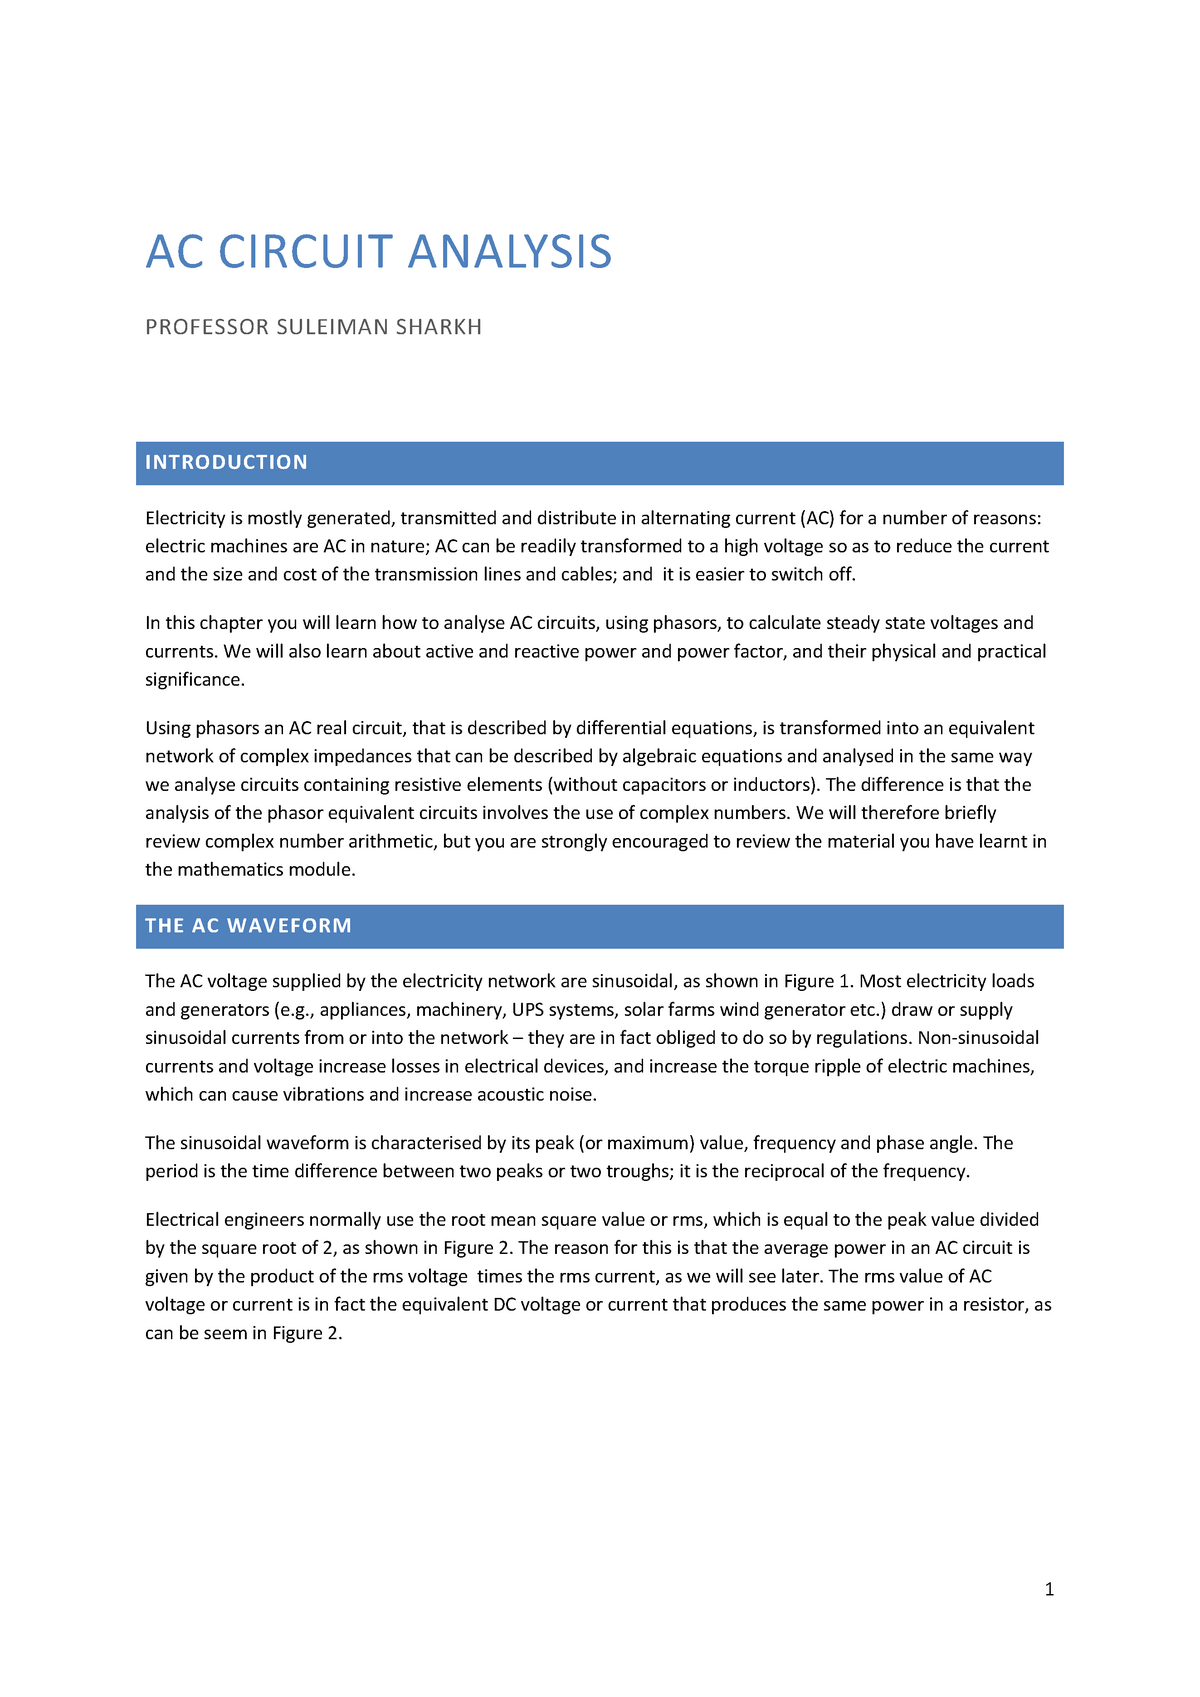 Currents In Rc Circuits And Rl Circuits With Increasing Frequency